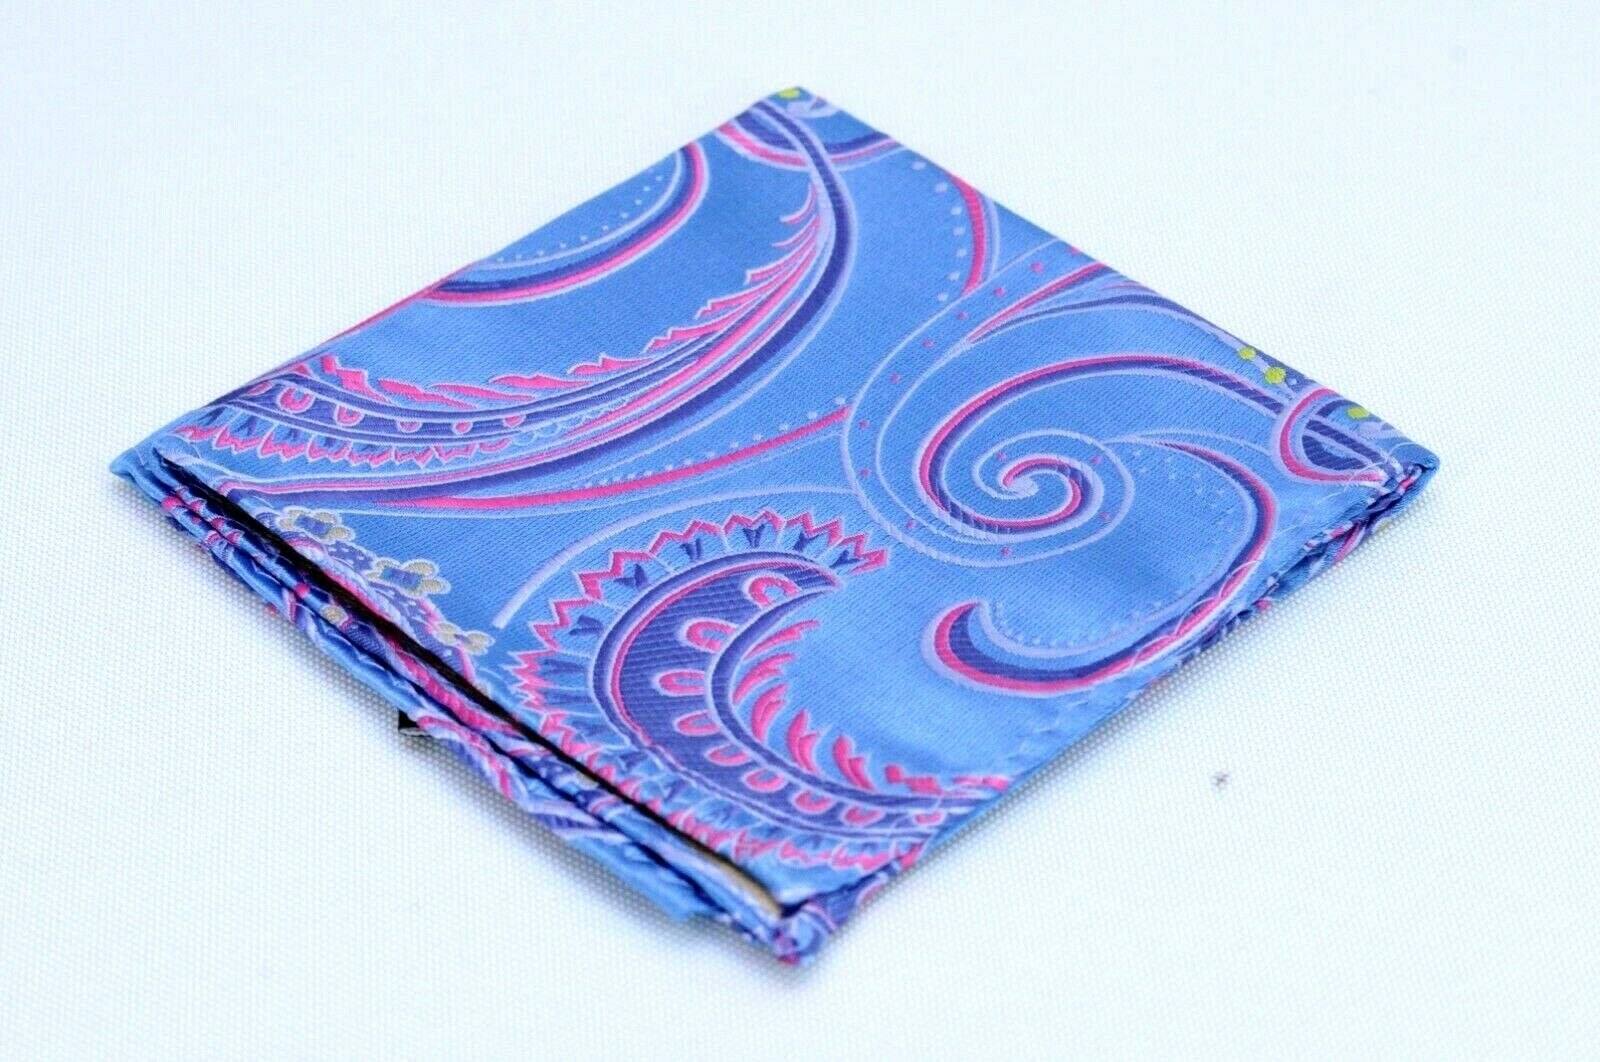 Lord R Colton Masterworks Pocket Square Blue & Pink Supremacy Silk New